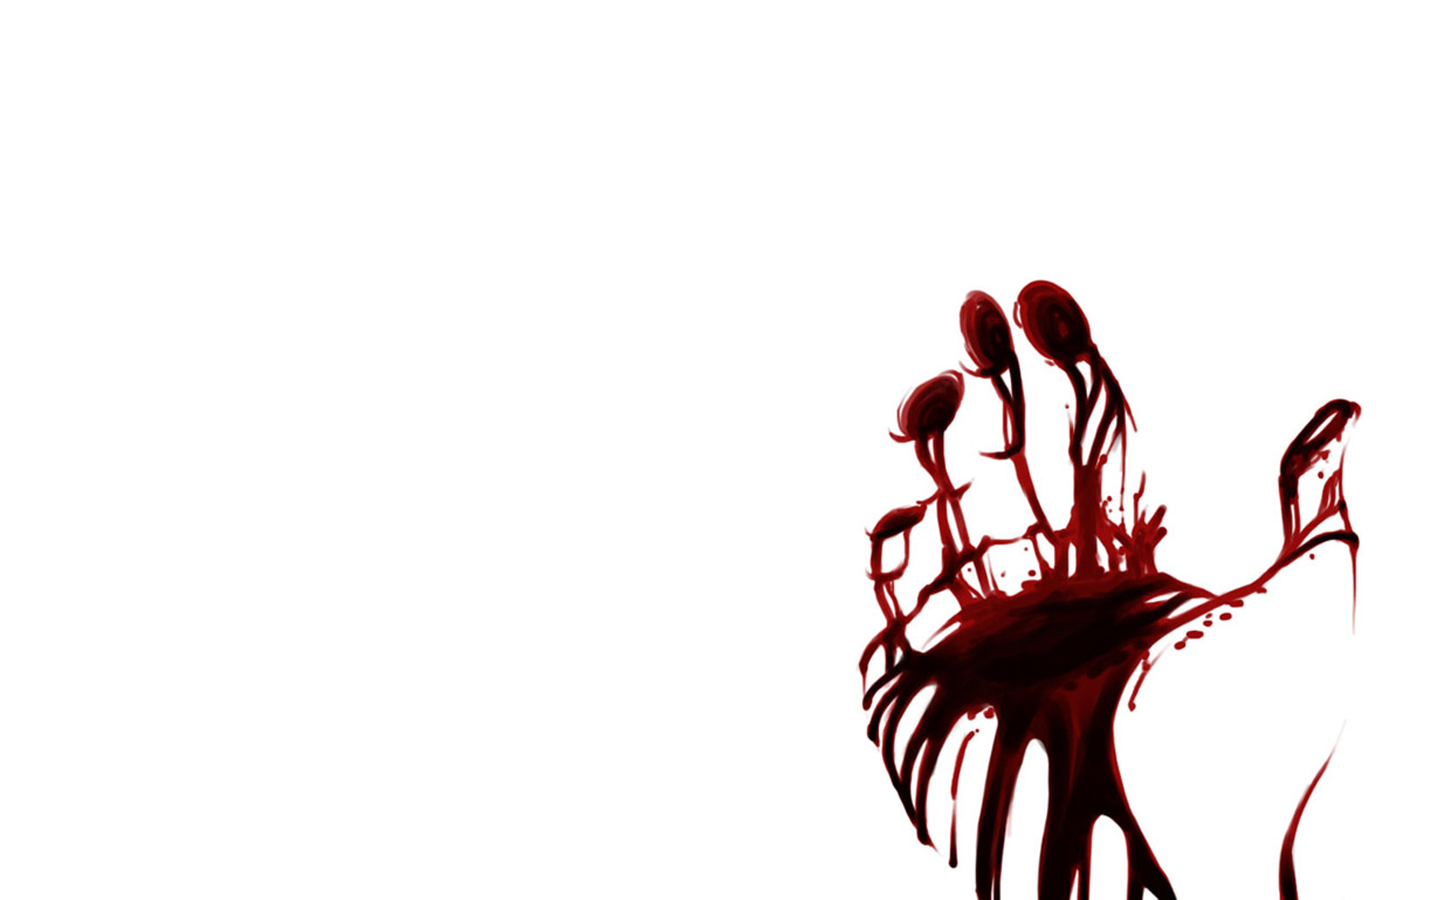 blood wallpaper and background image | 1440x900 | id:384138